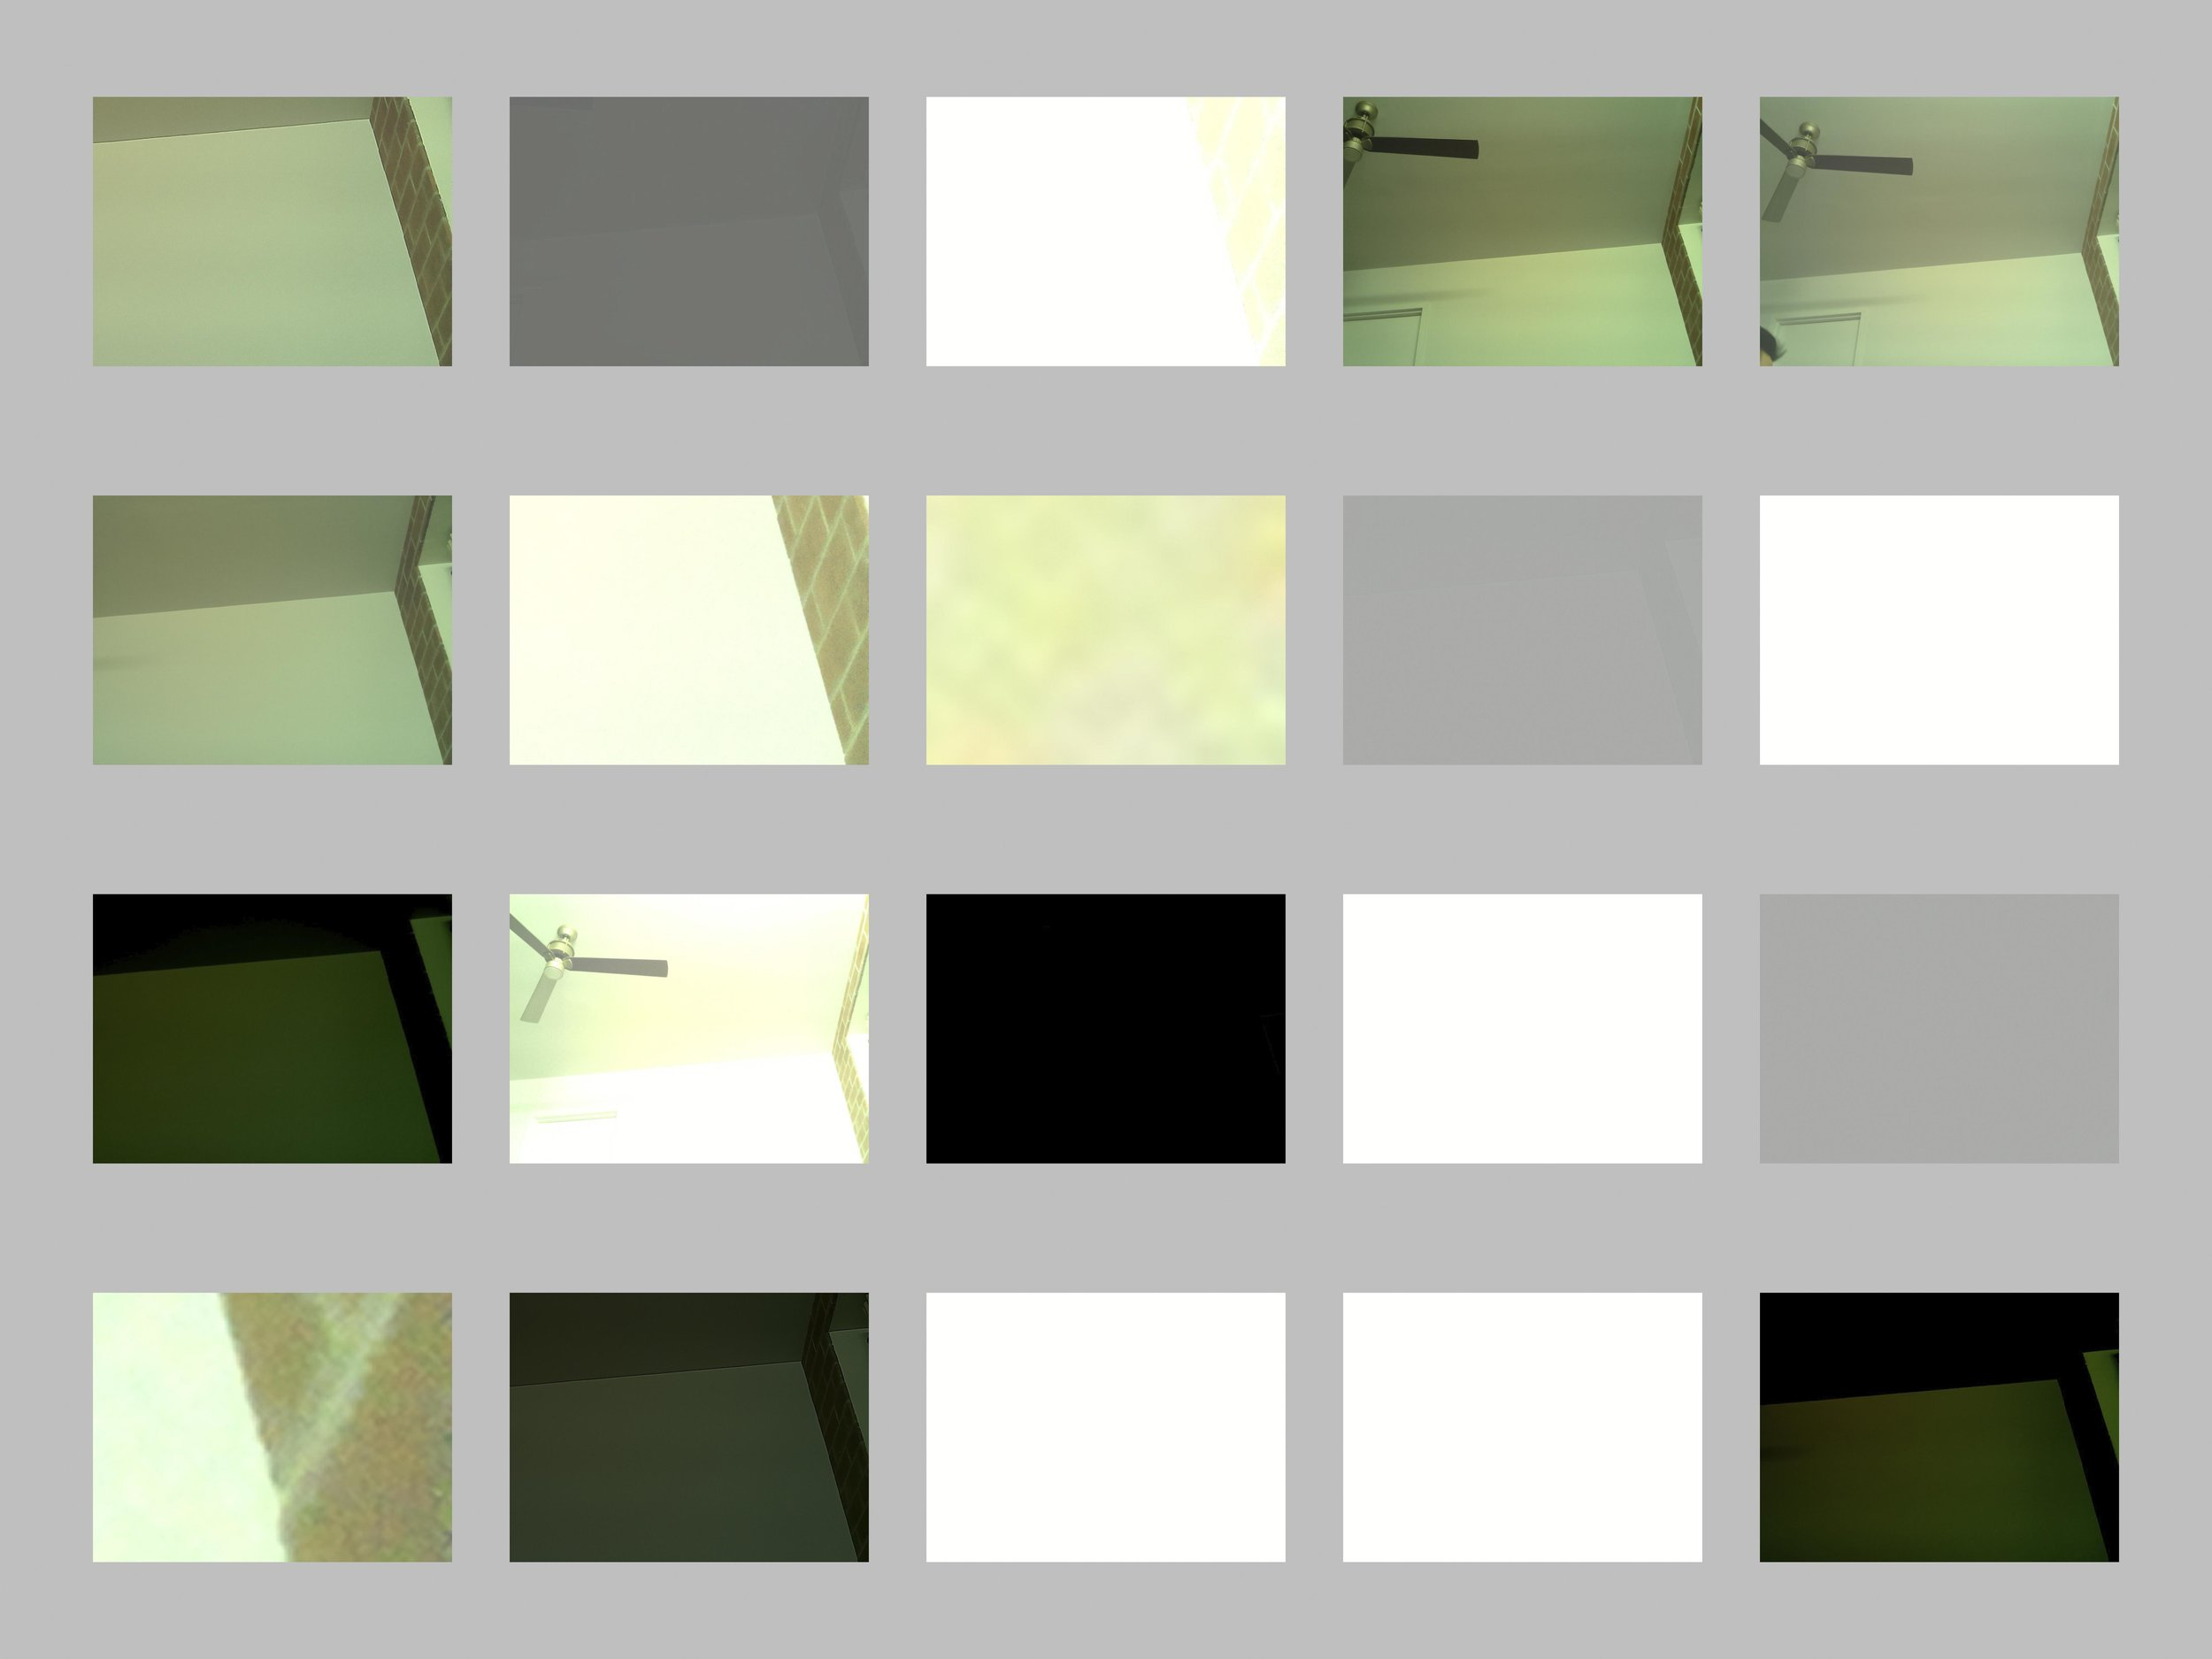 At Home, Test No.1, 5x4 Grids, No.0-No.19 / Photos from a self-programed camera, Adobe Bridge default layout with 4:3 ratio, digital printing